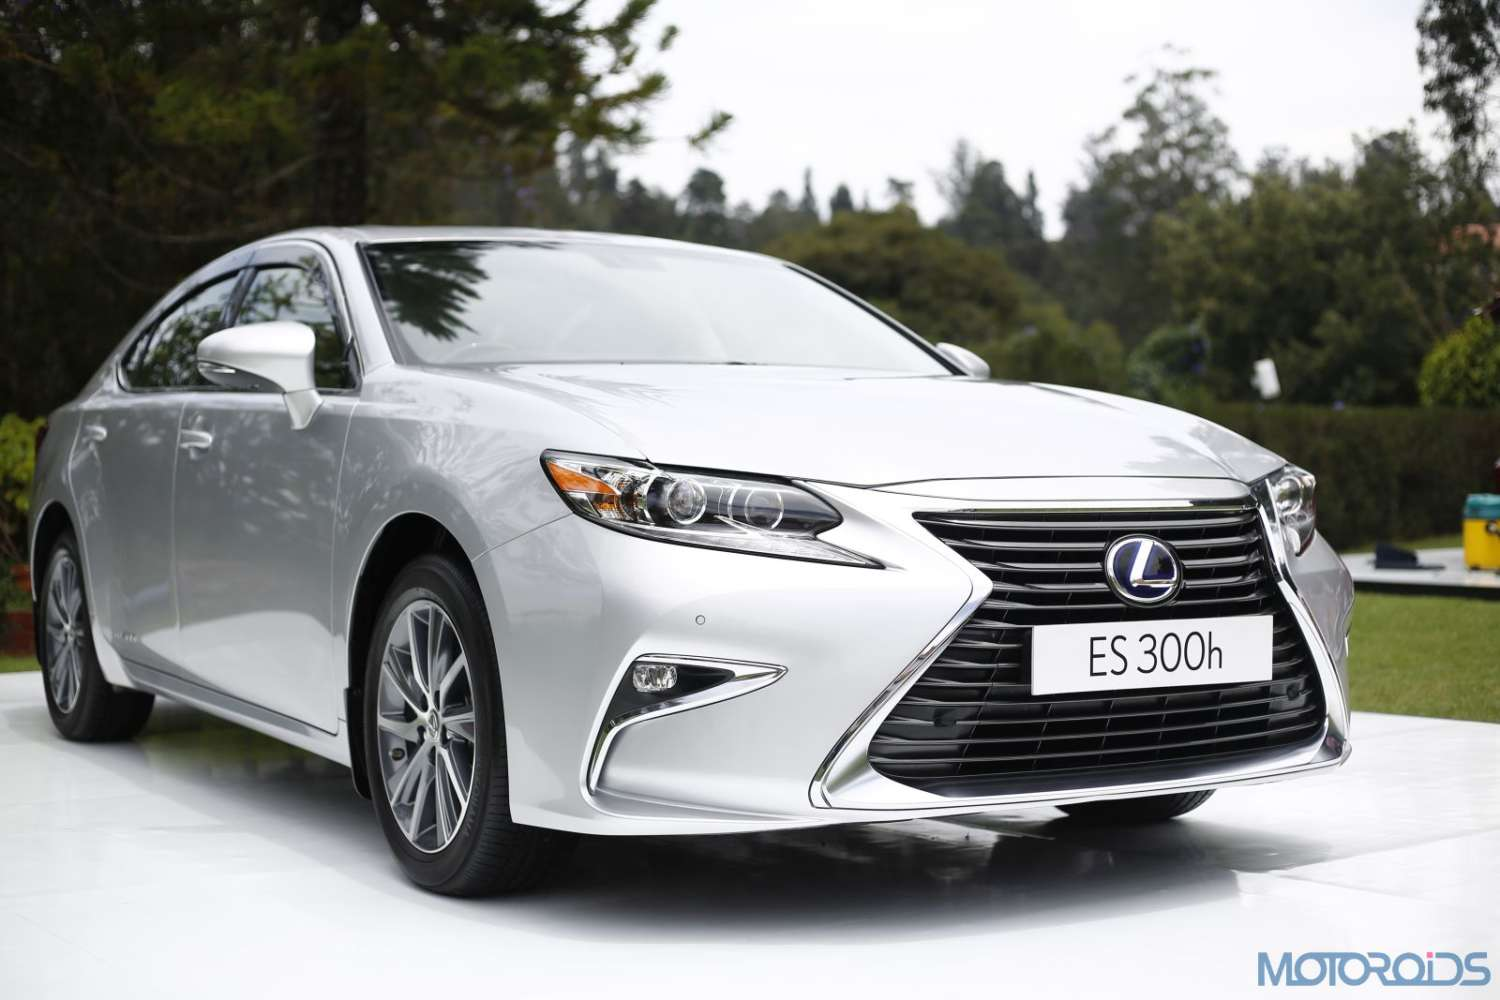 lexus es 300h first drive review modern classic motoroids. Black Bedroom Furniture Sets. Home Design Ideas